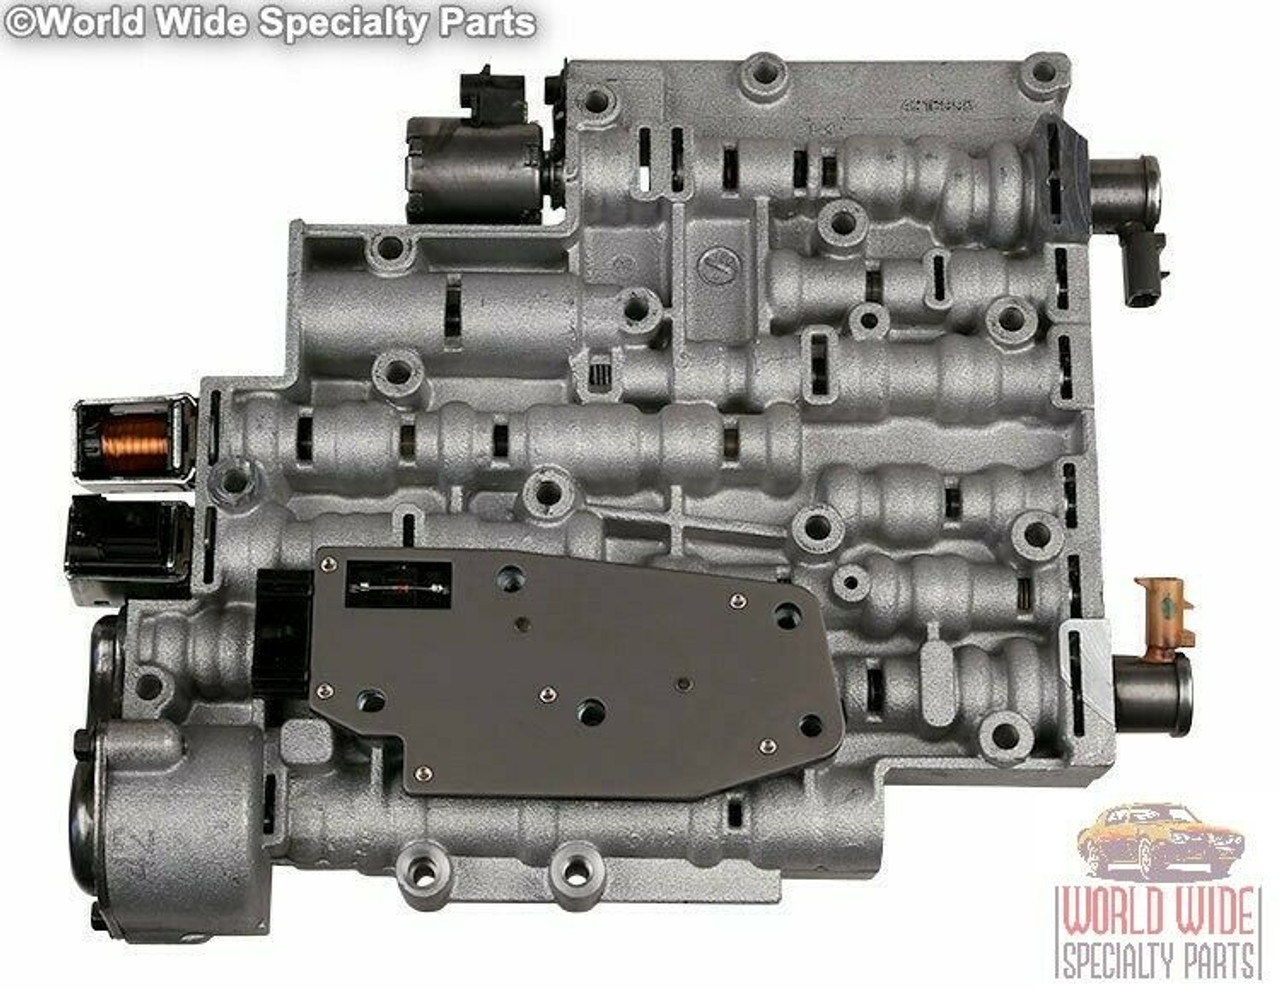 GM 4L60E, 4L65E Valve Body 2001-2002 w/ Transgo 4L60E-HD2 Kit Installed, Tested